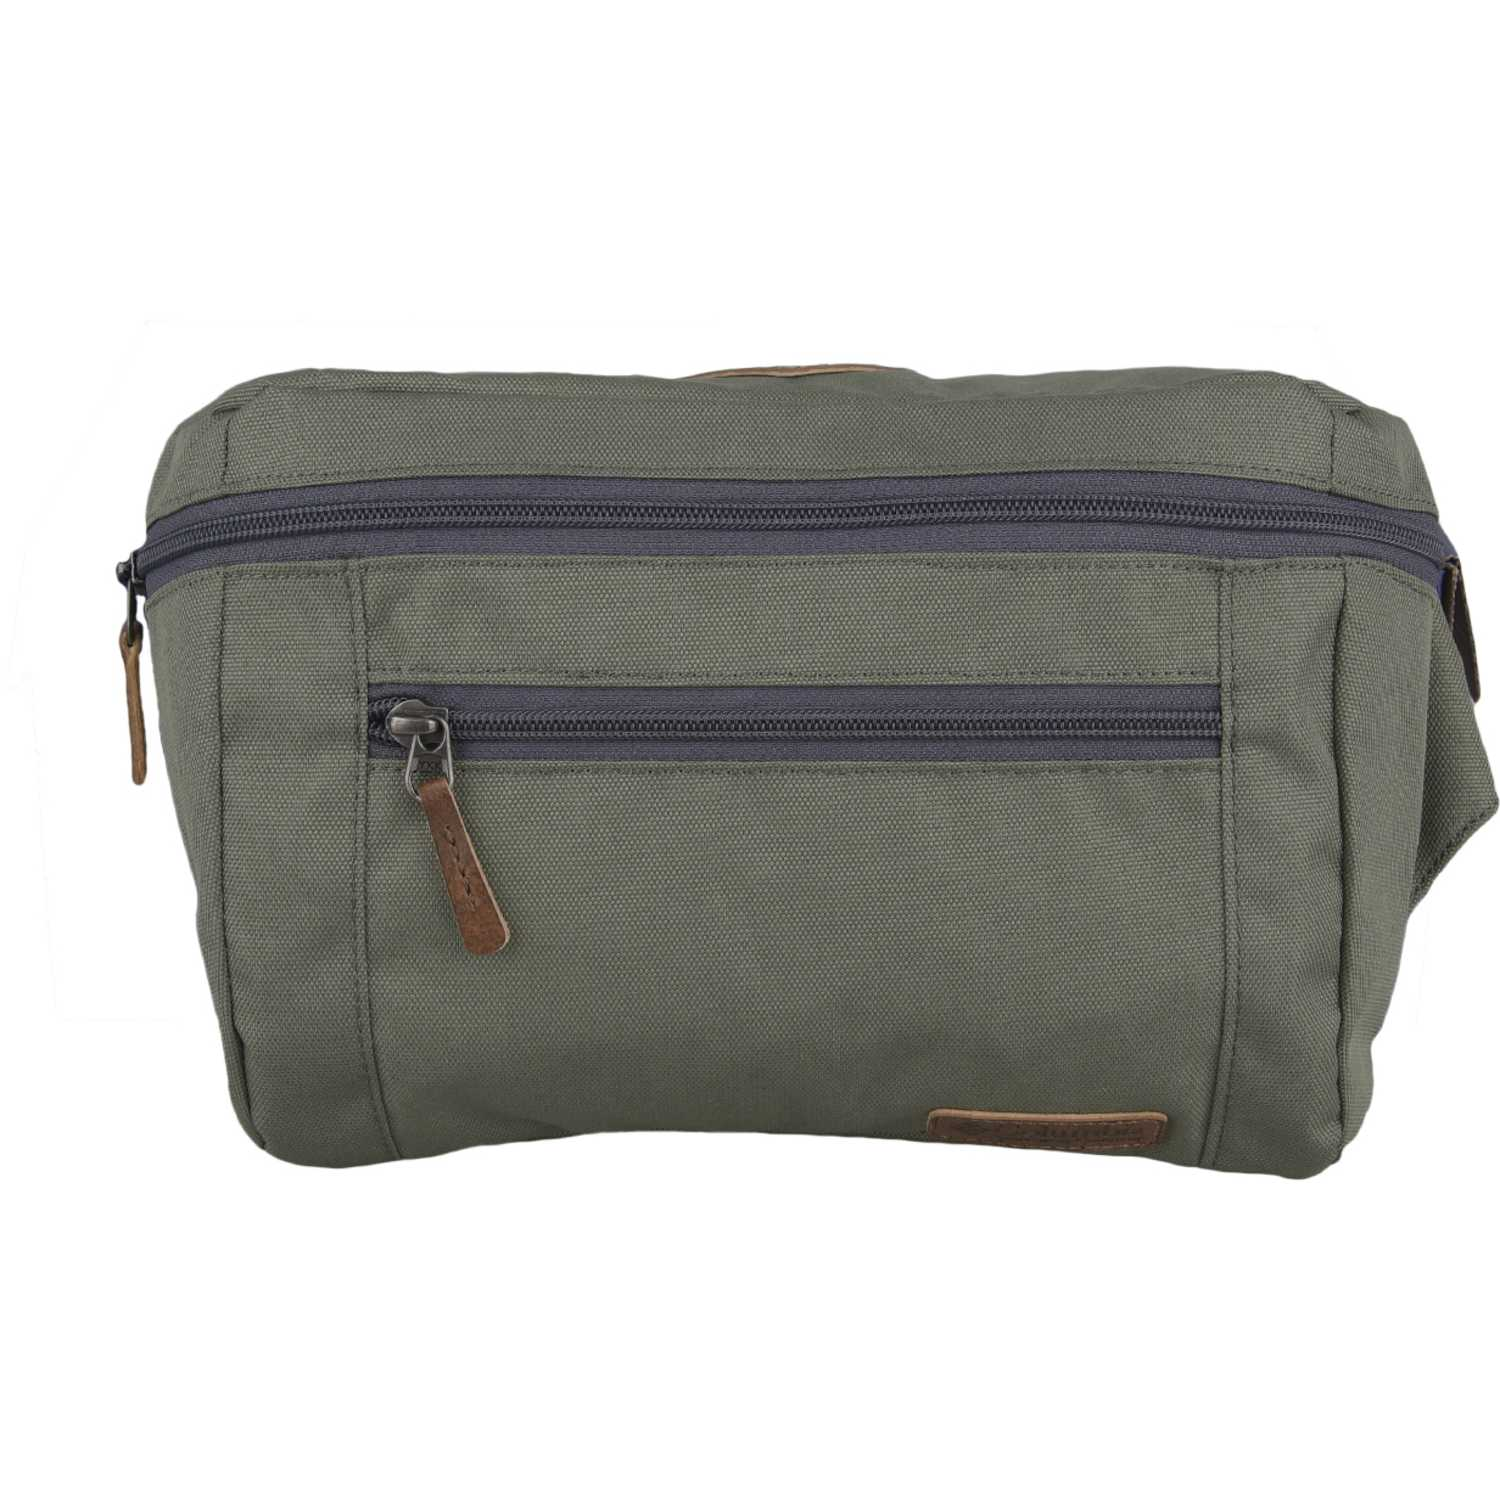 Canguro de Hombre Columbia Navy outdoor lumbar bag